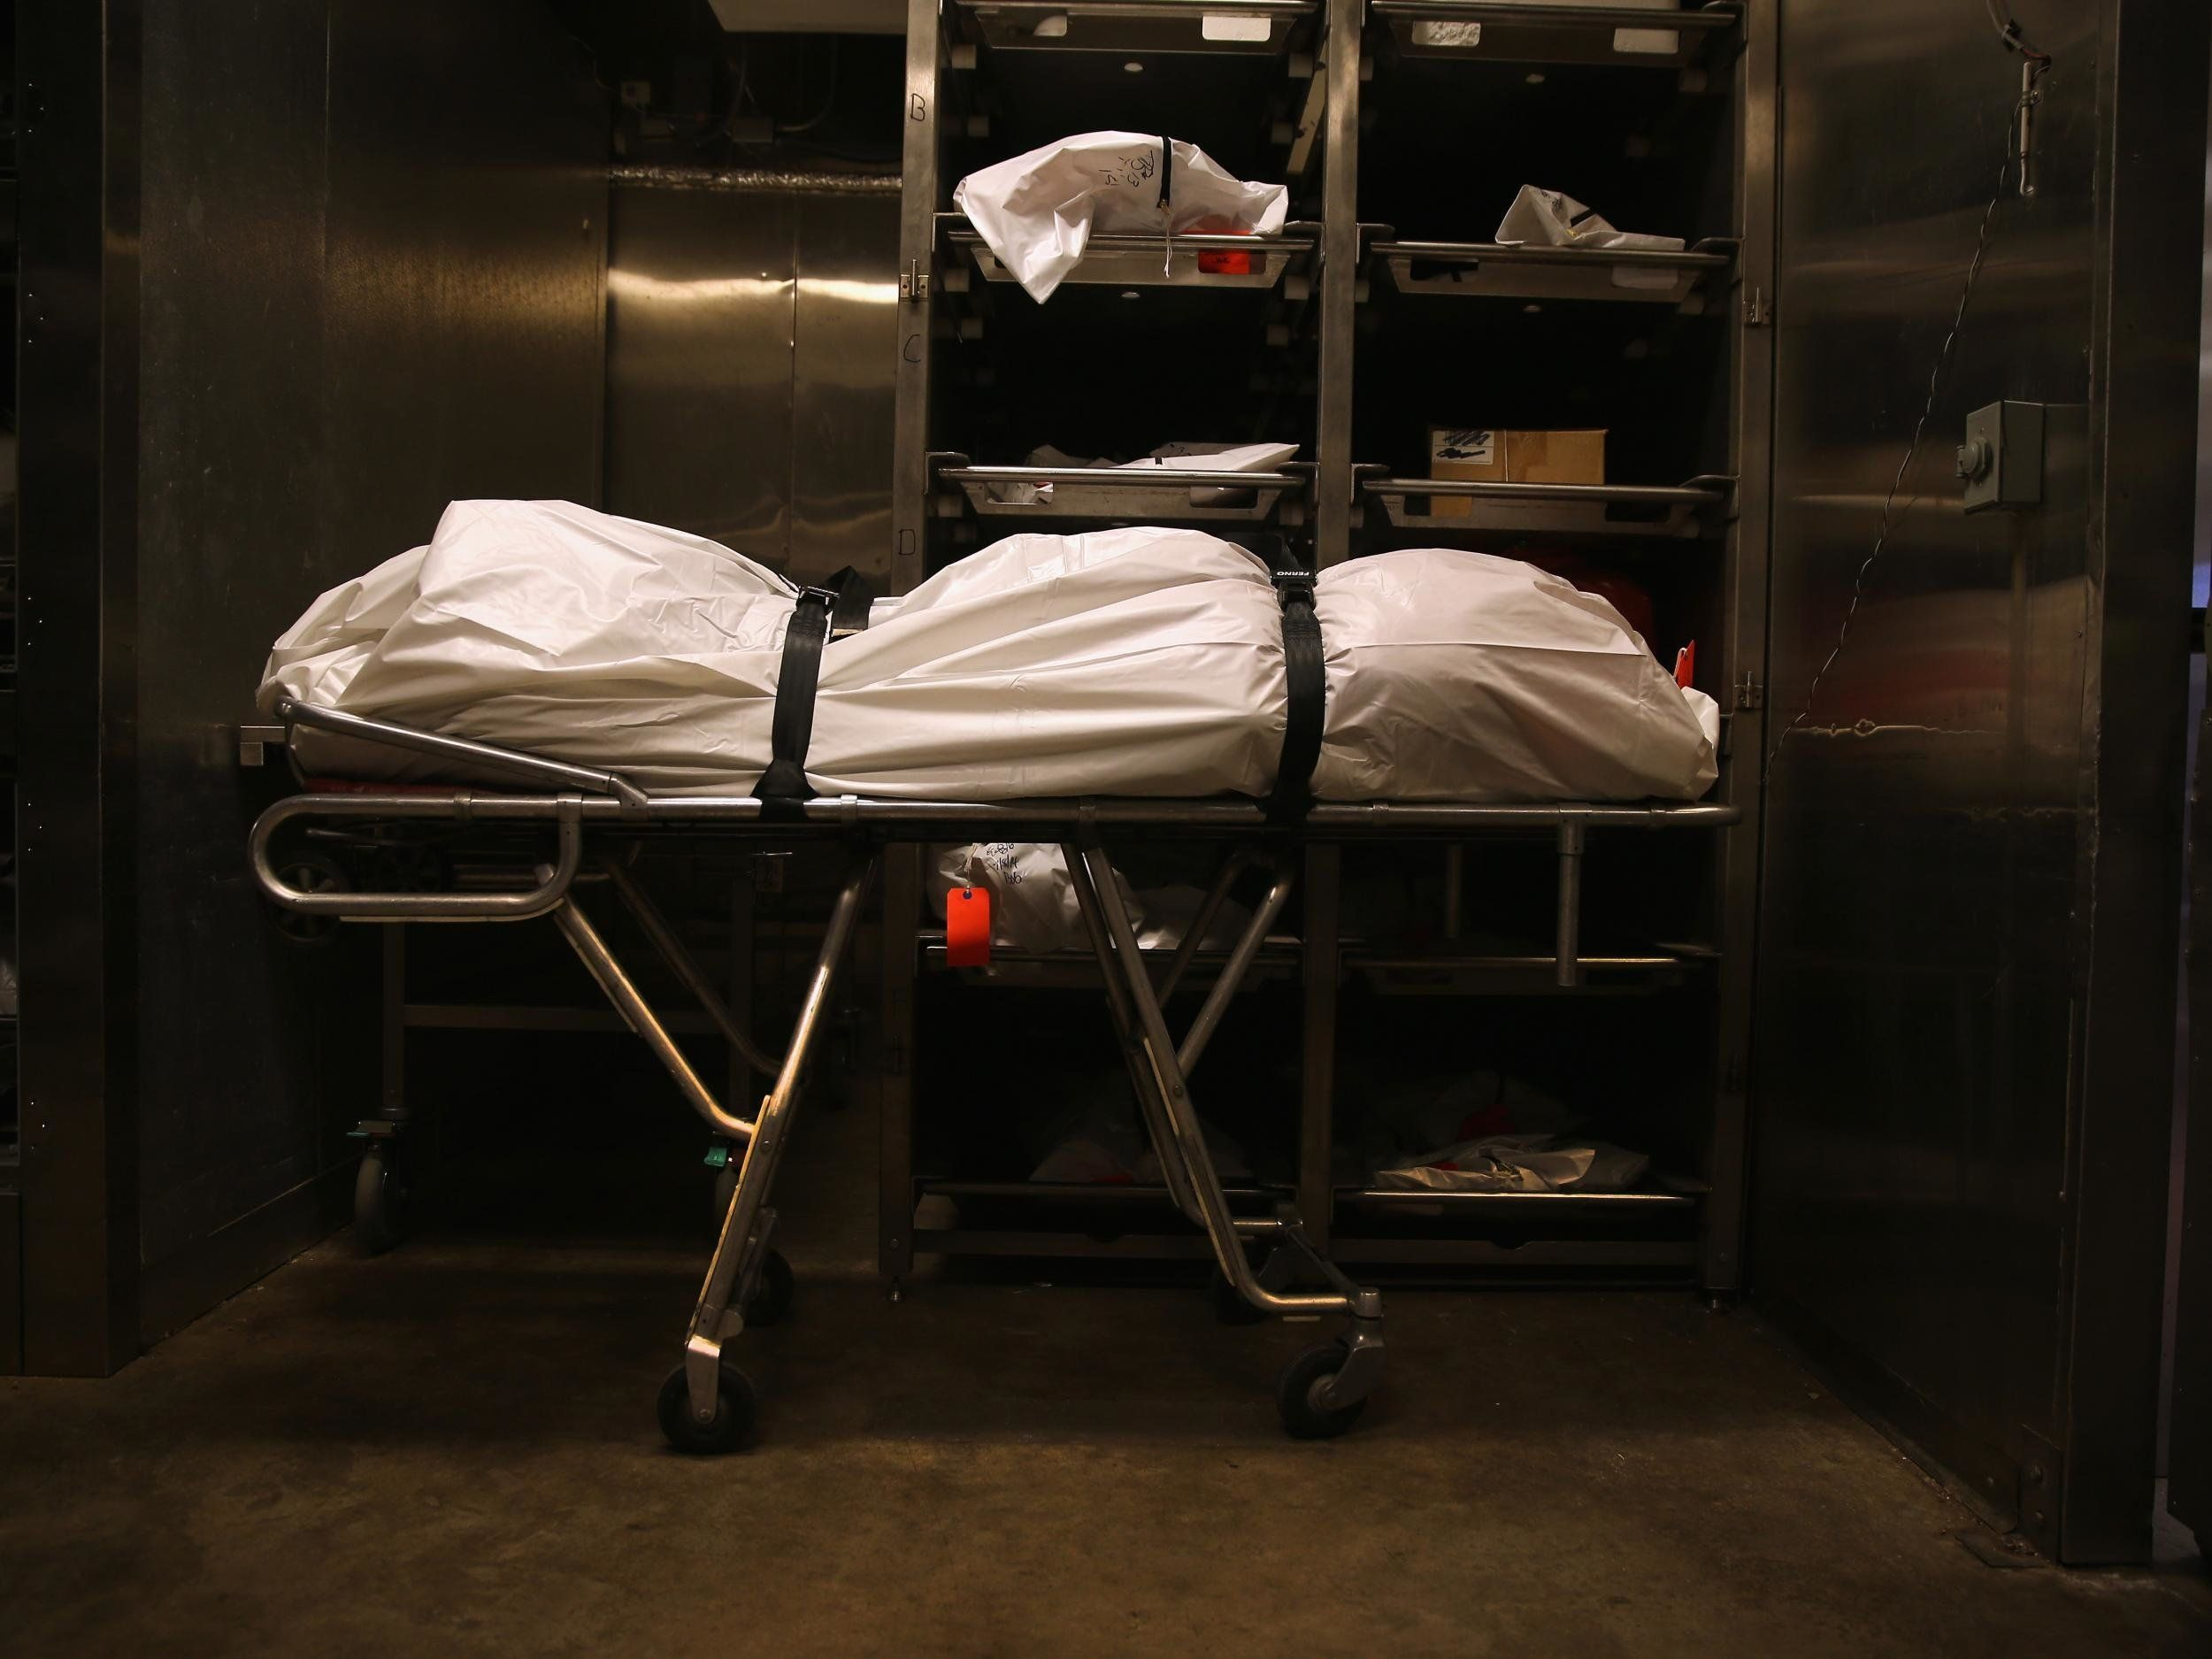 NHS Trusts Bringing In Extra Mortuary Equipment For Severely Obese